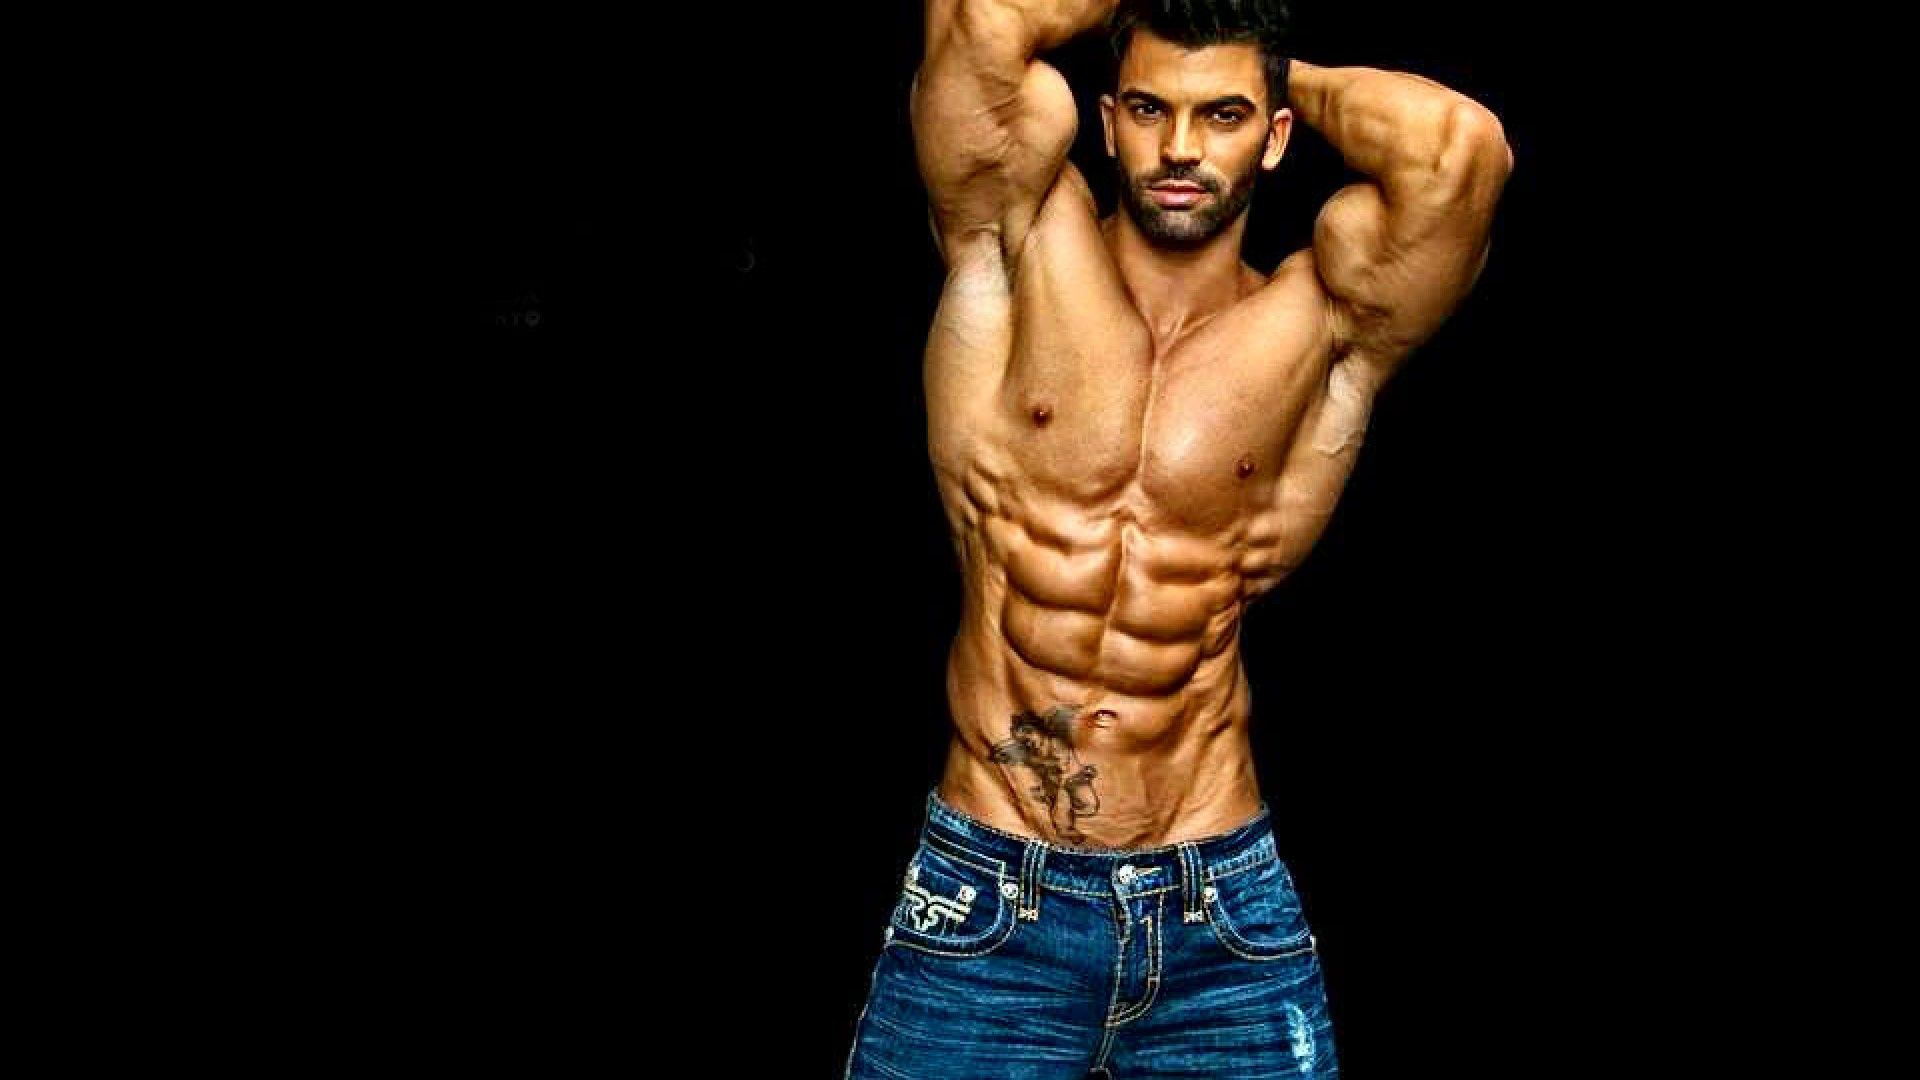 build muscle get ripped without steroids